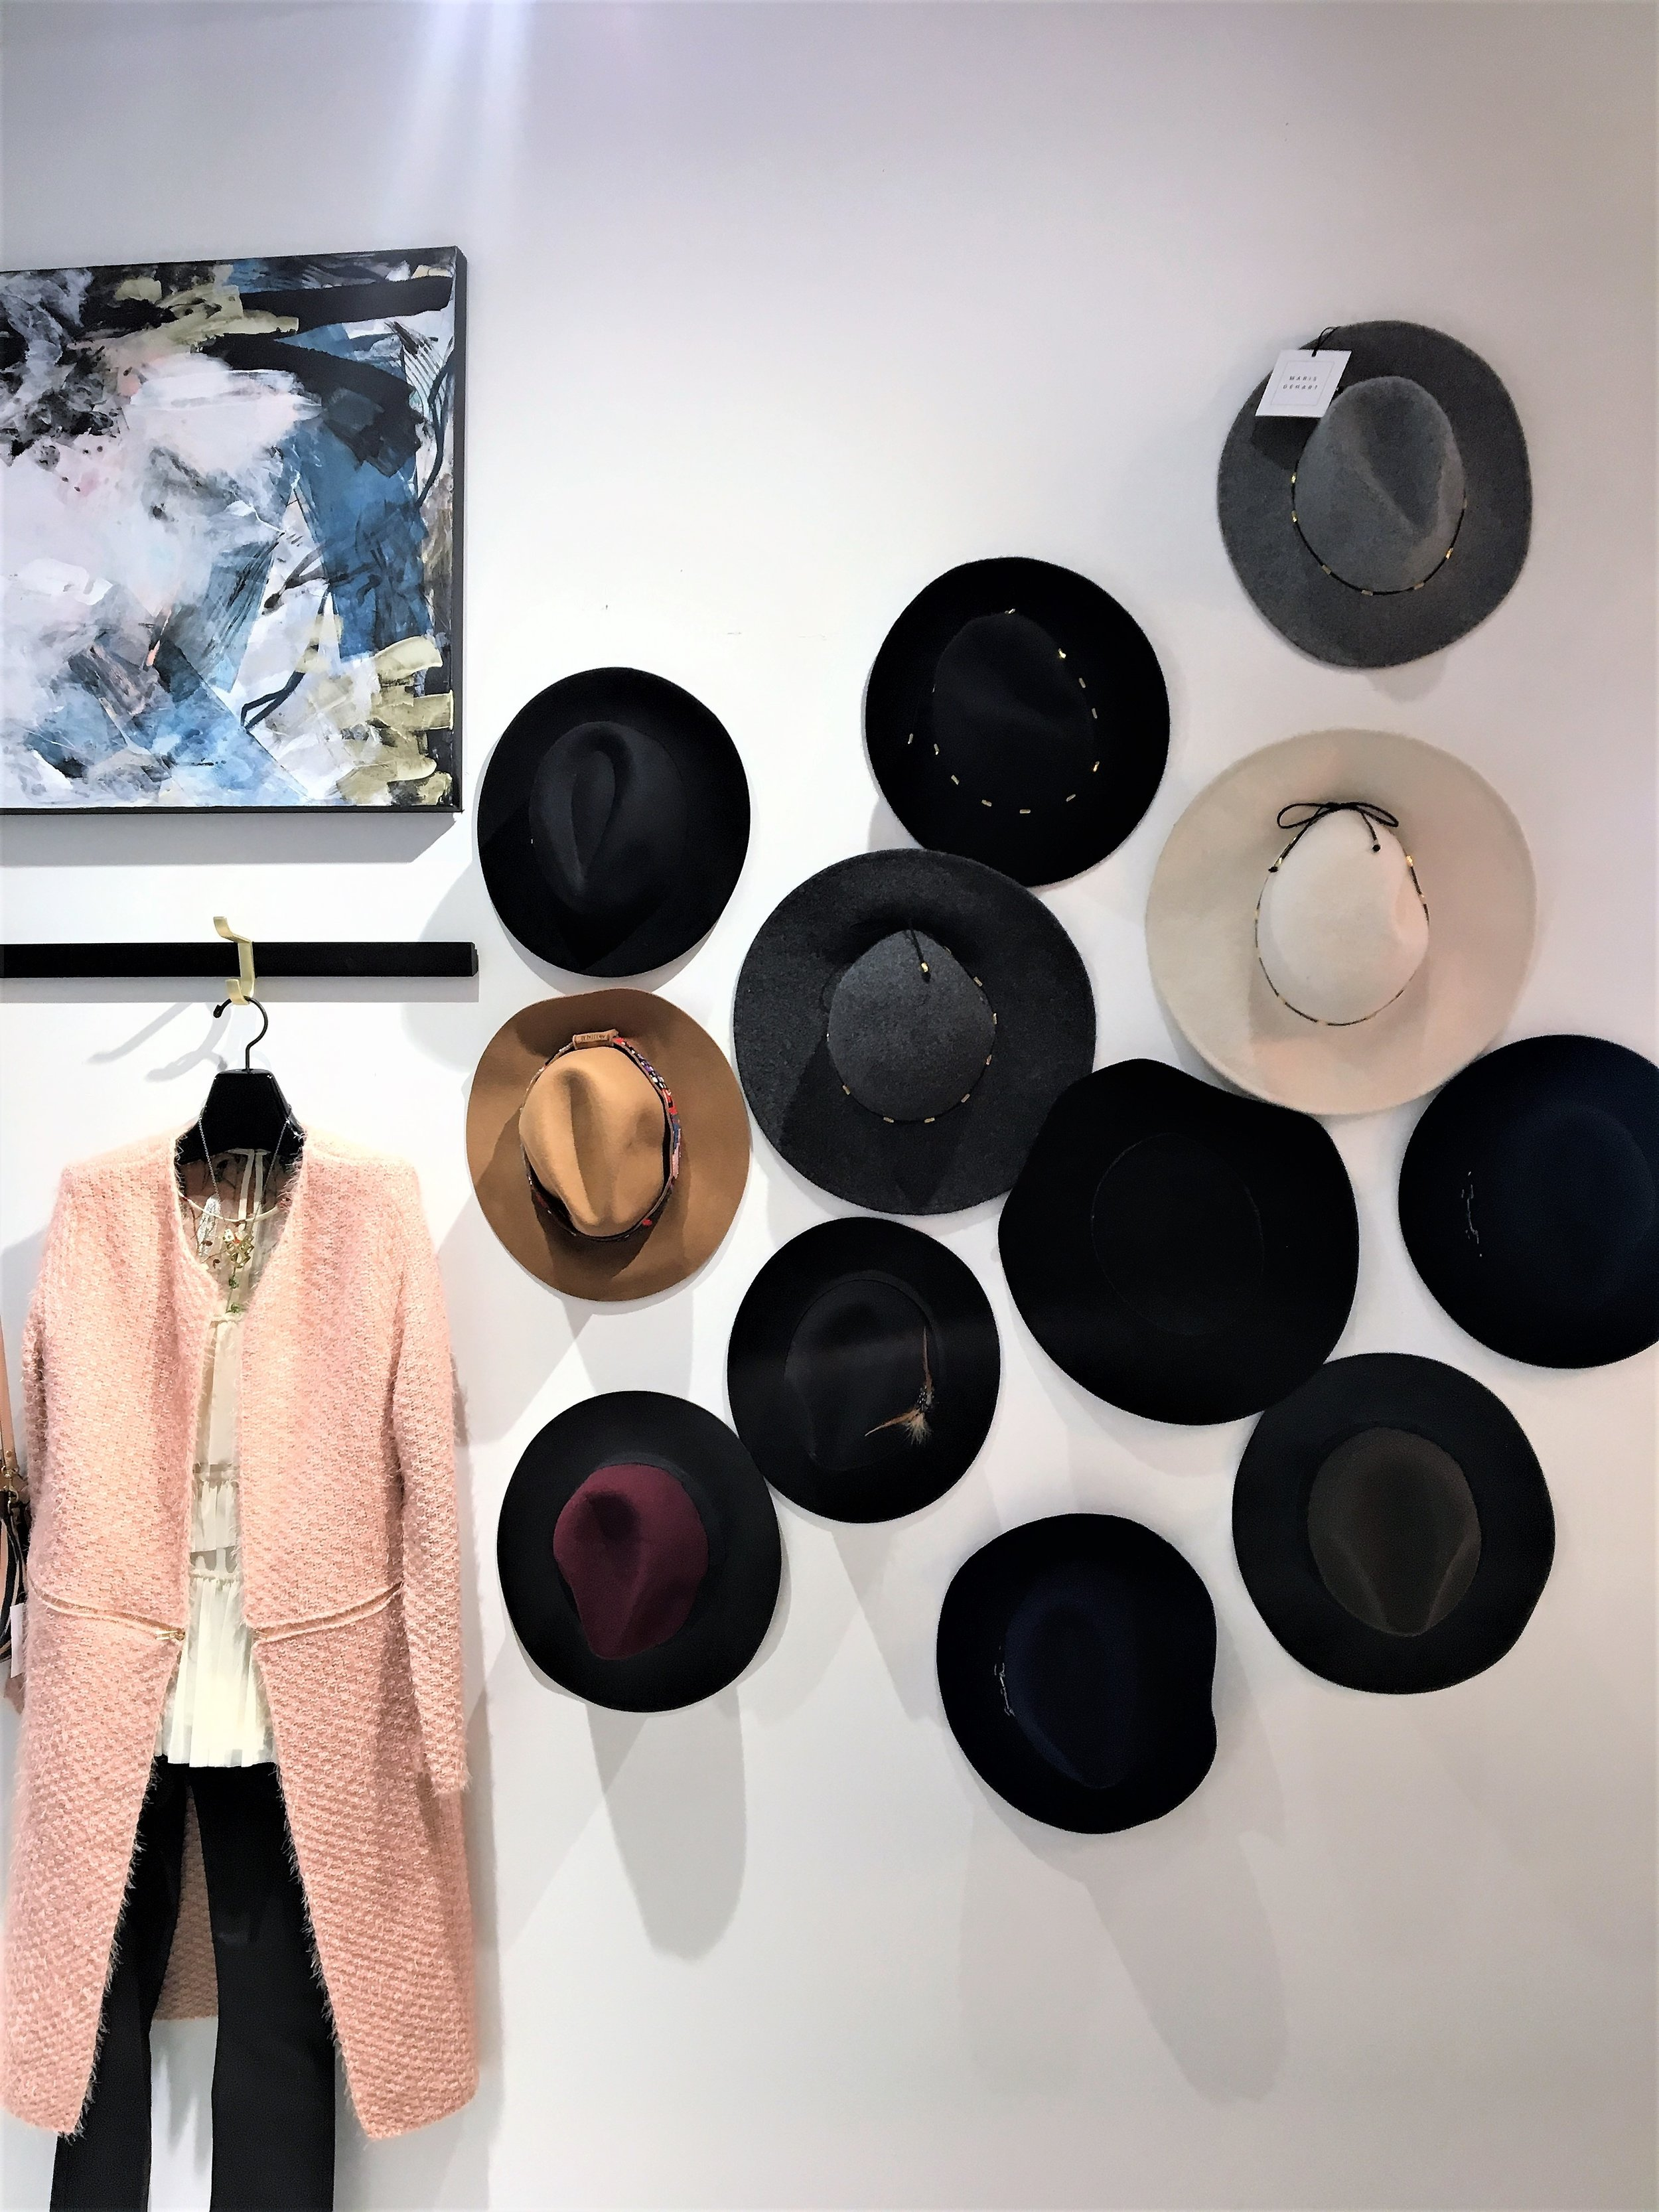 Maris Dehart  is a contemporary boutique that carries items by local designers as well as emerging designers from other cities. This is where I found my  Hart Studio tassel earrings. A beautifully decorated boutique with many things to admire!